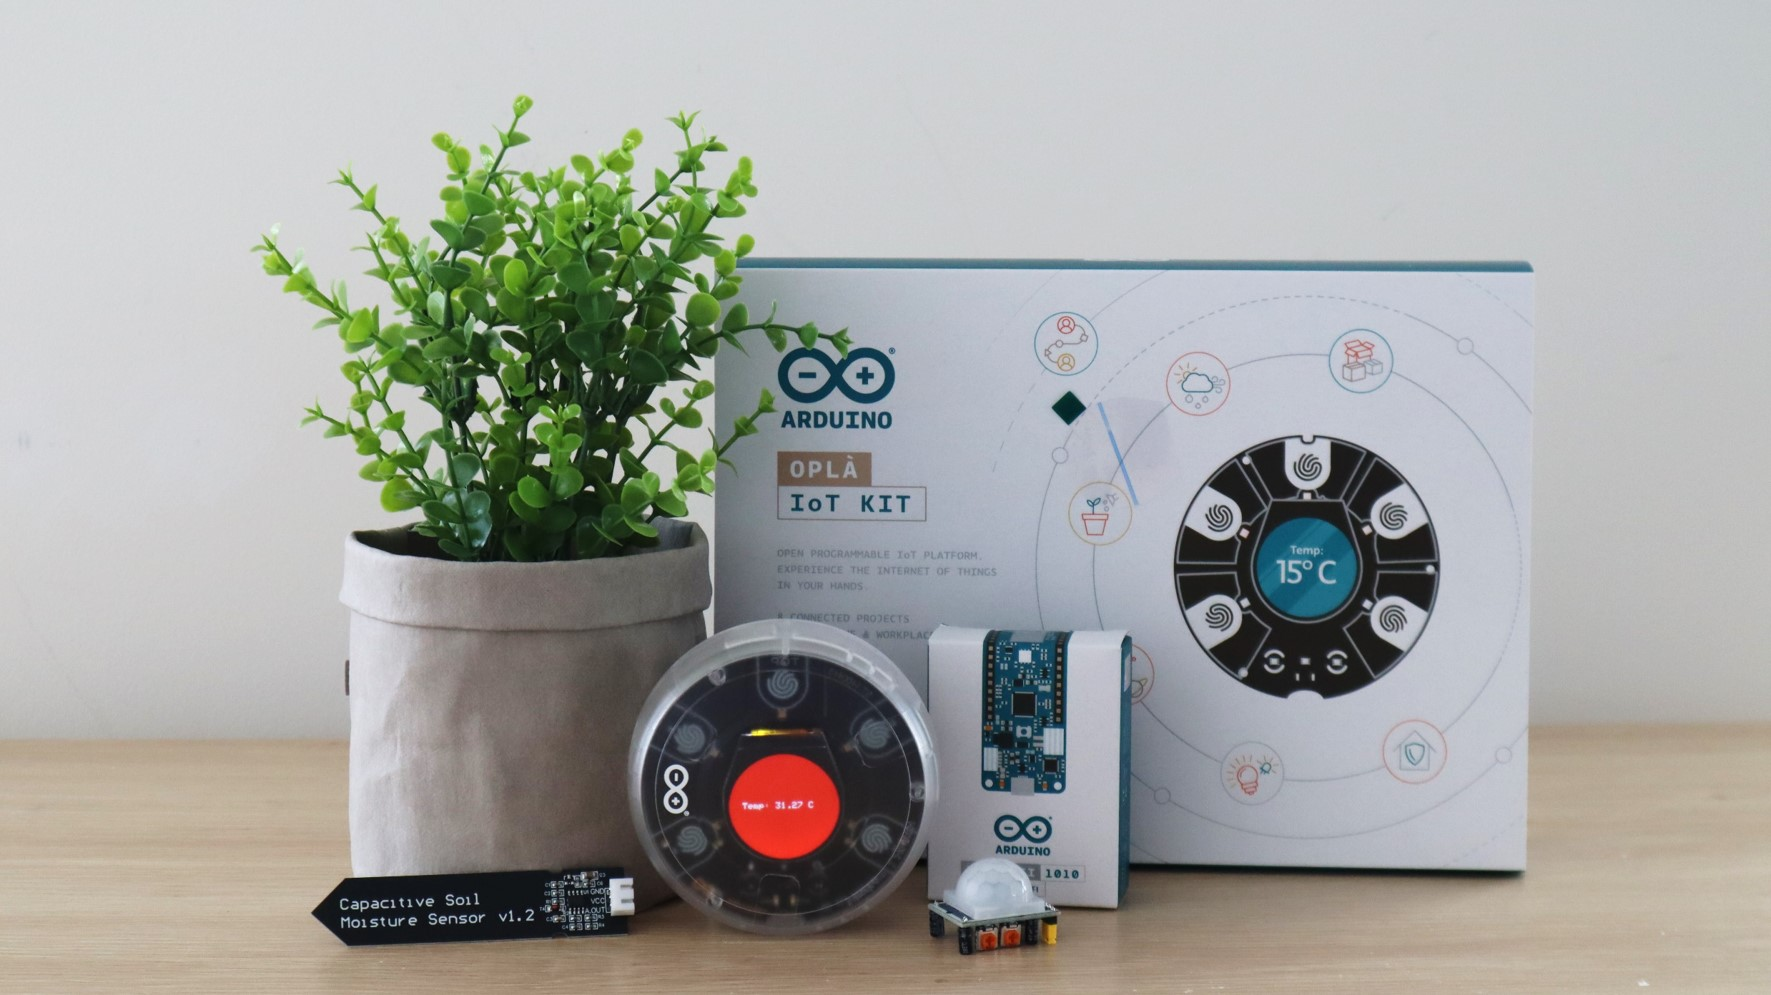 Arduino Opla IoT Kit Unboxing and First Impressions